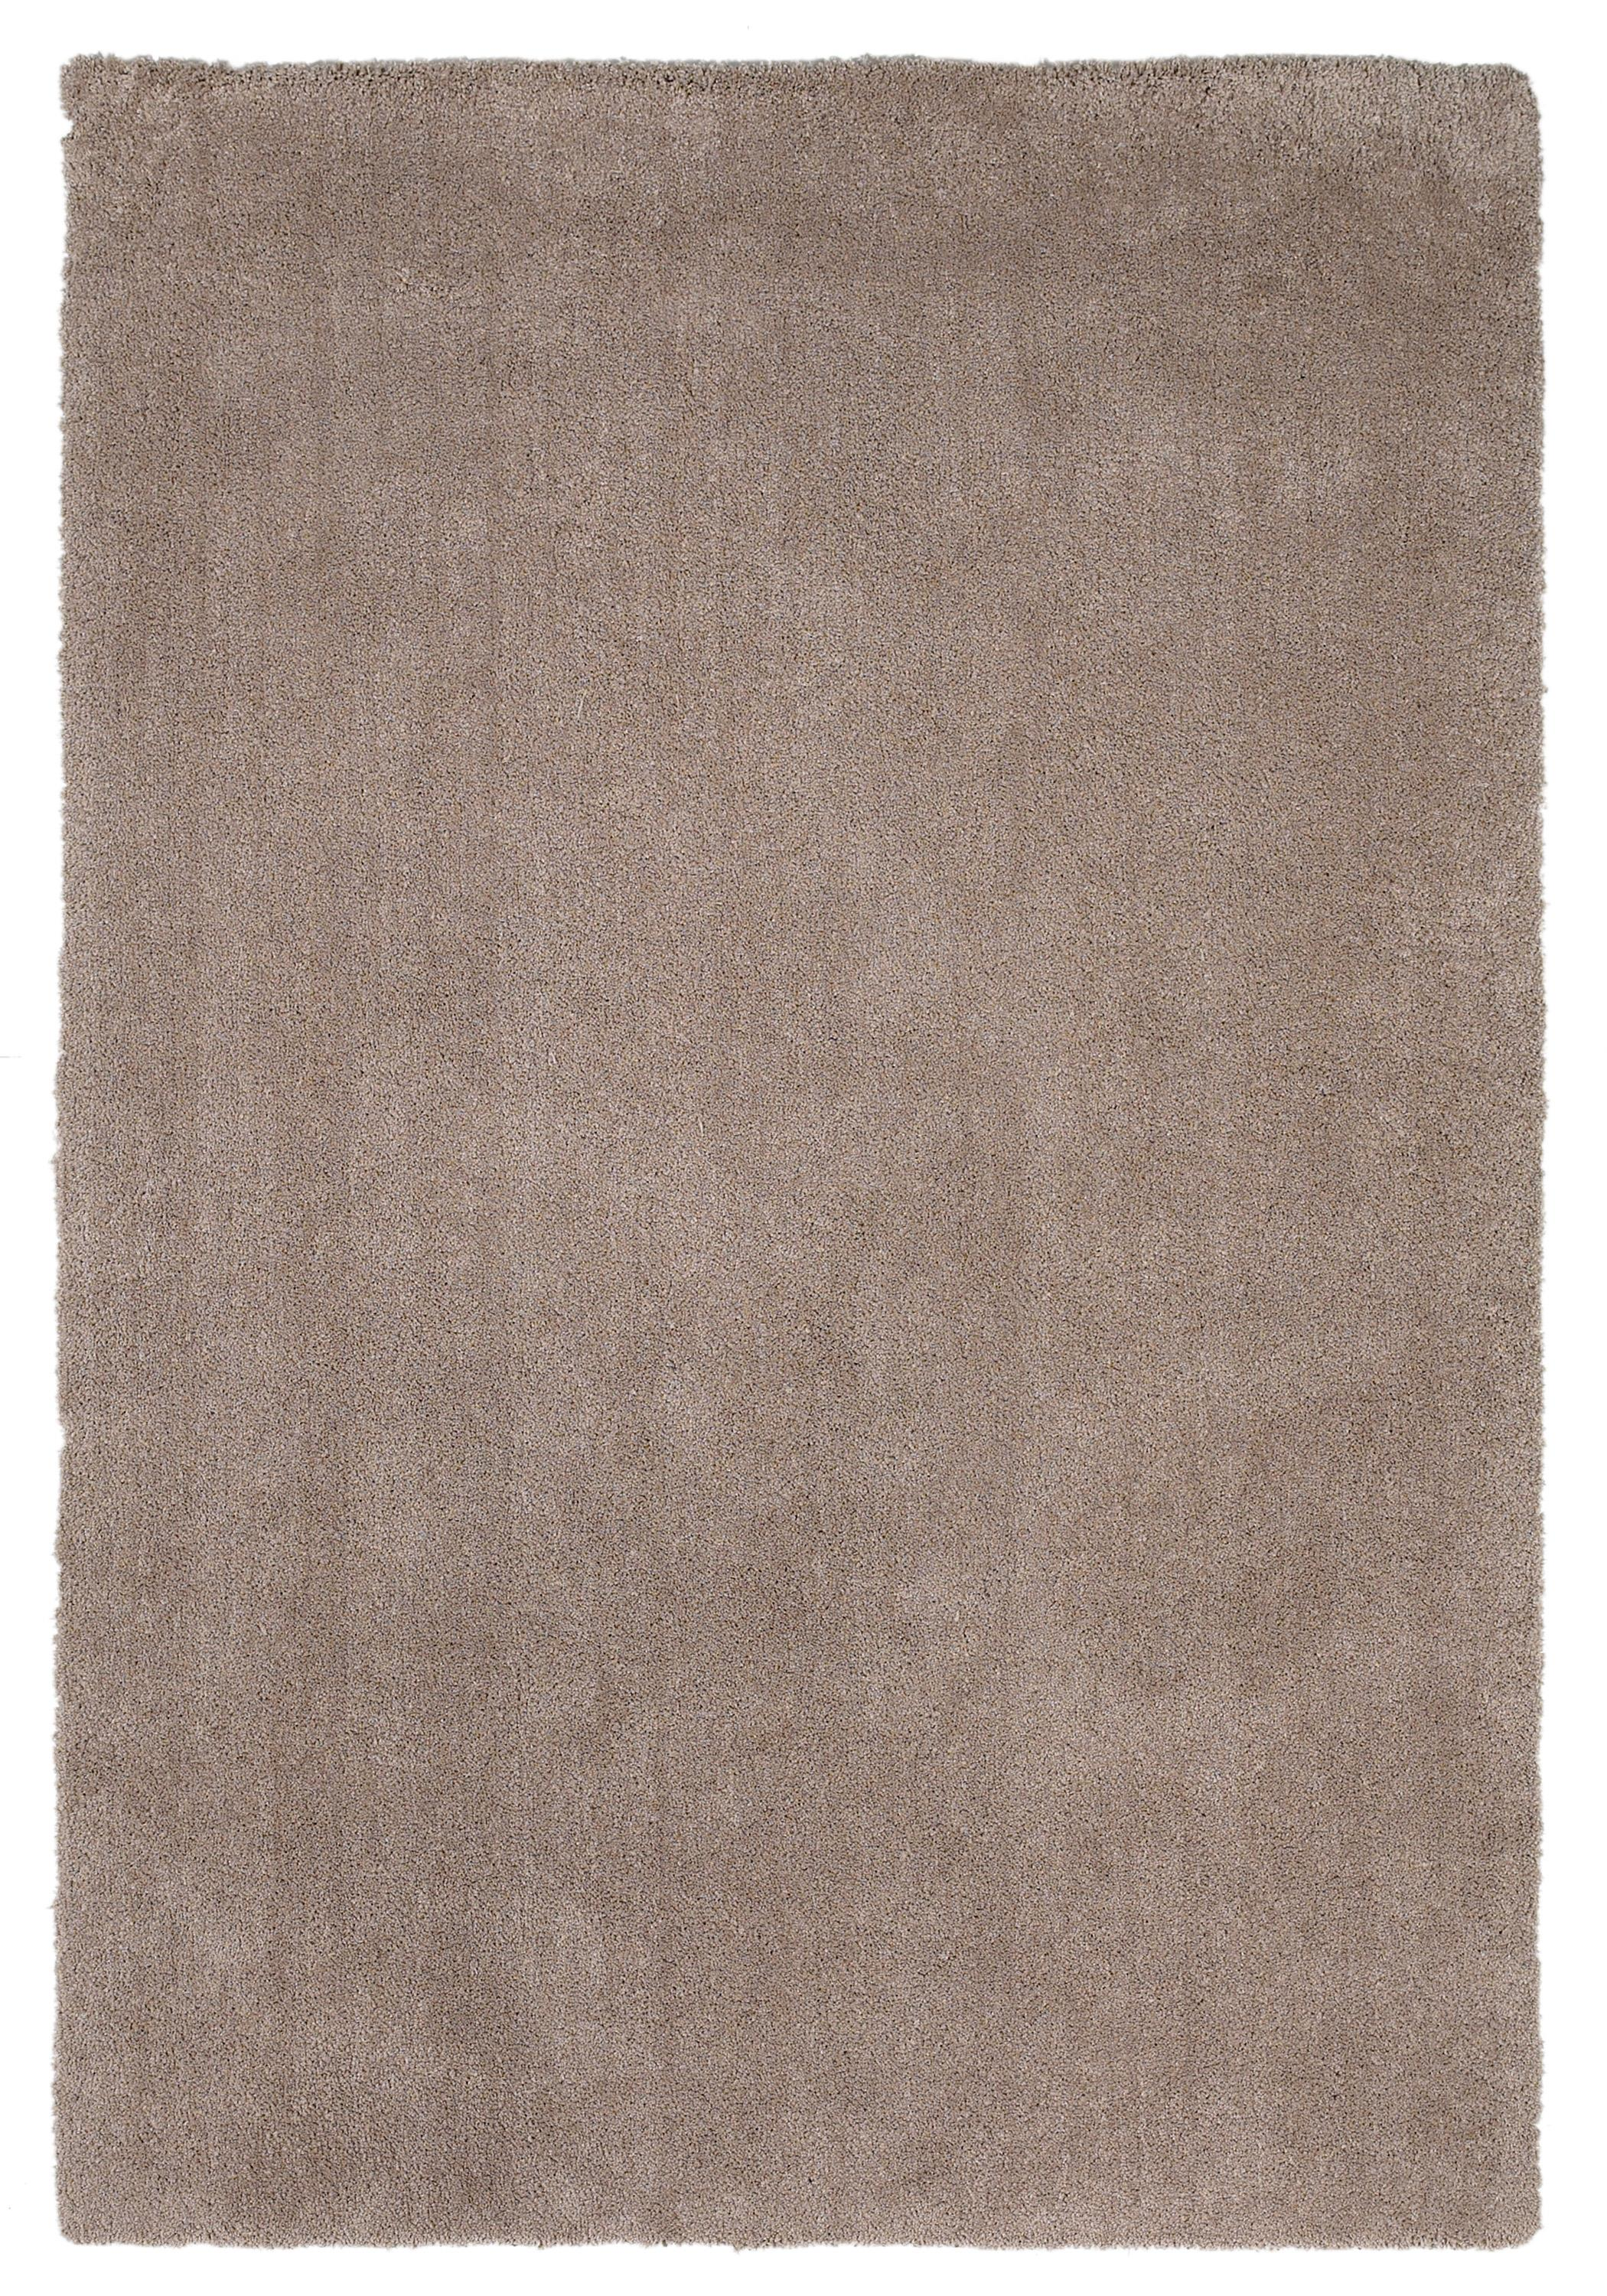 Bliss 5' X 7' Rug by Kas at Darvin Furniture